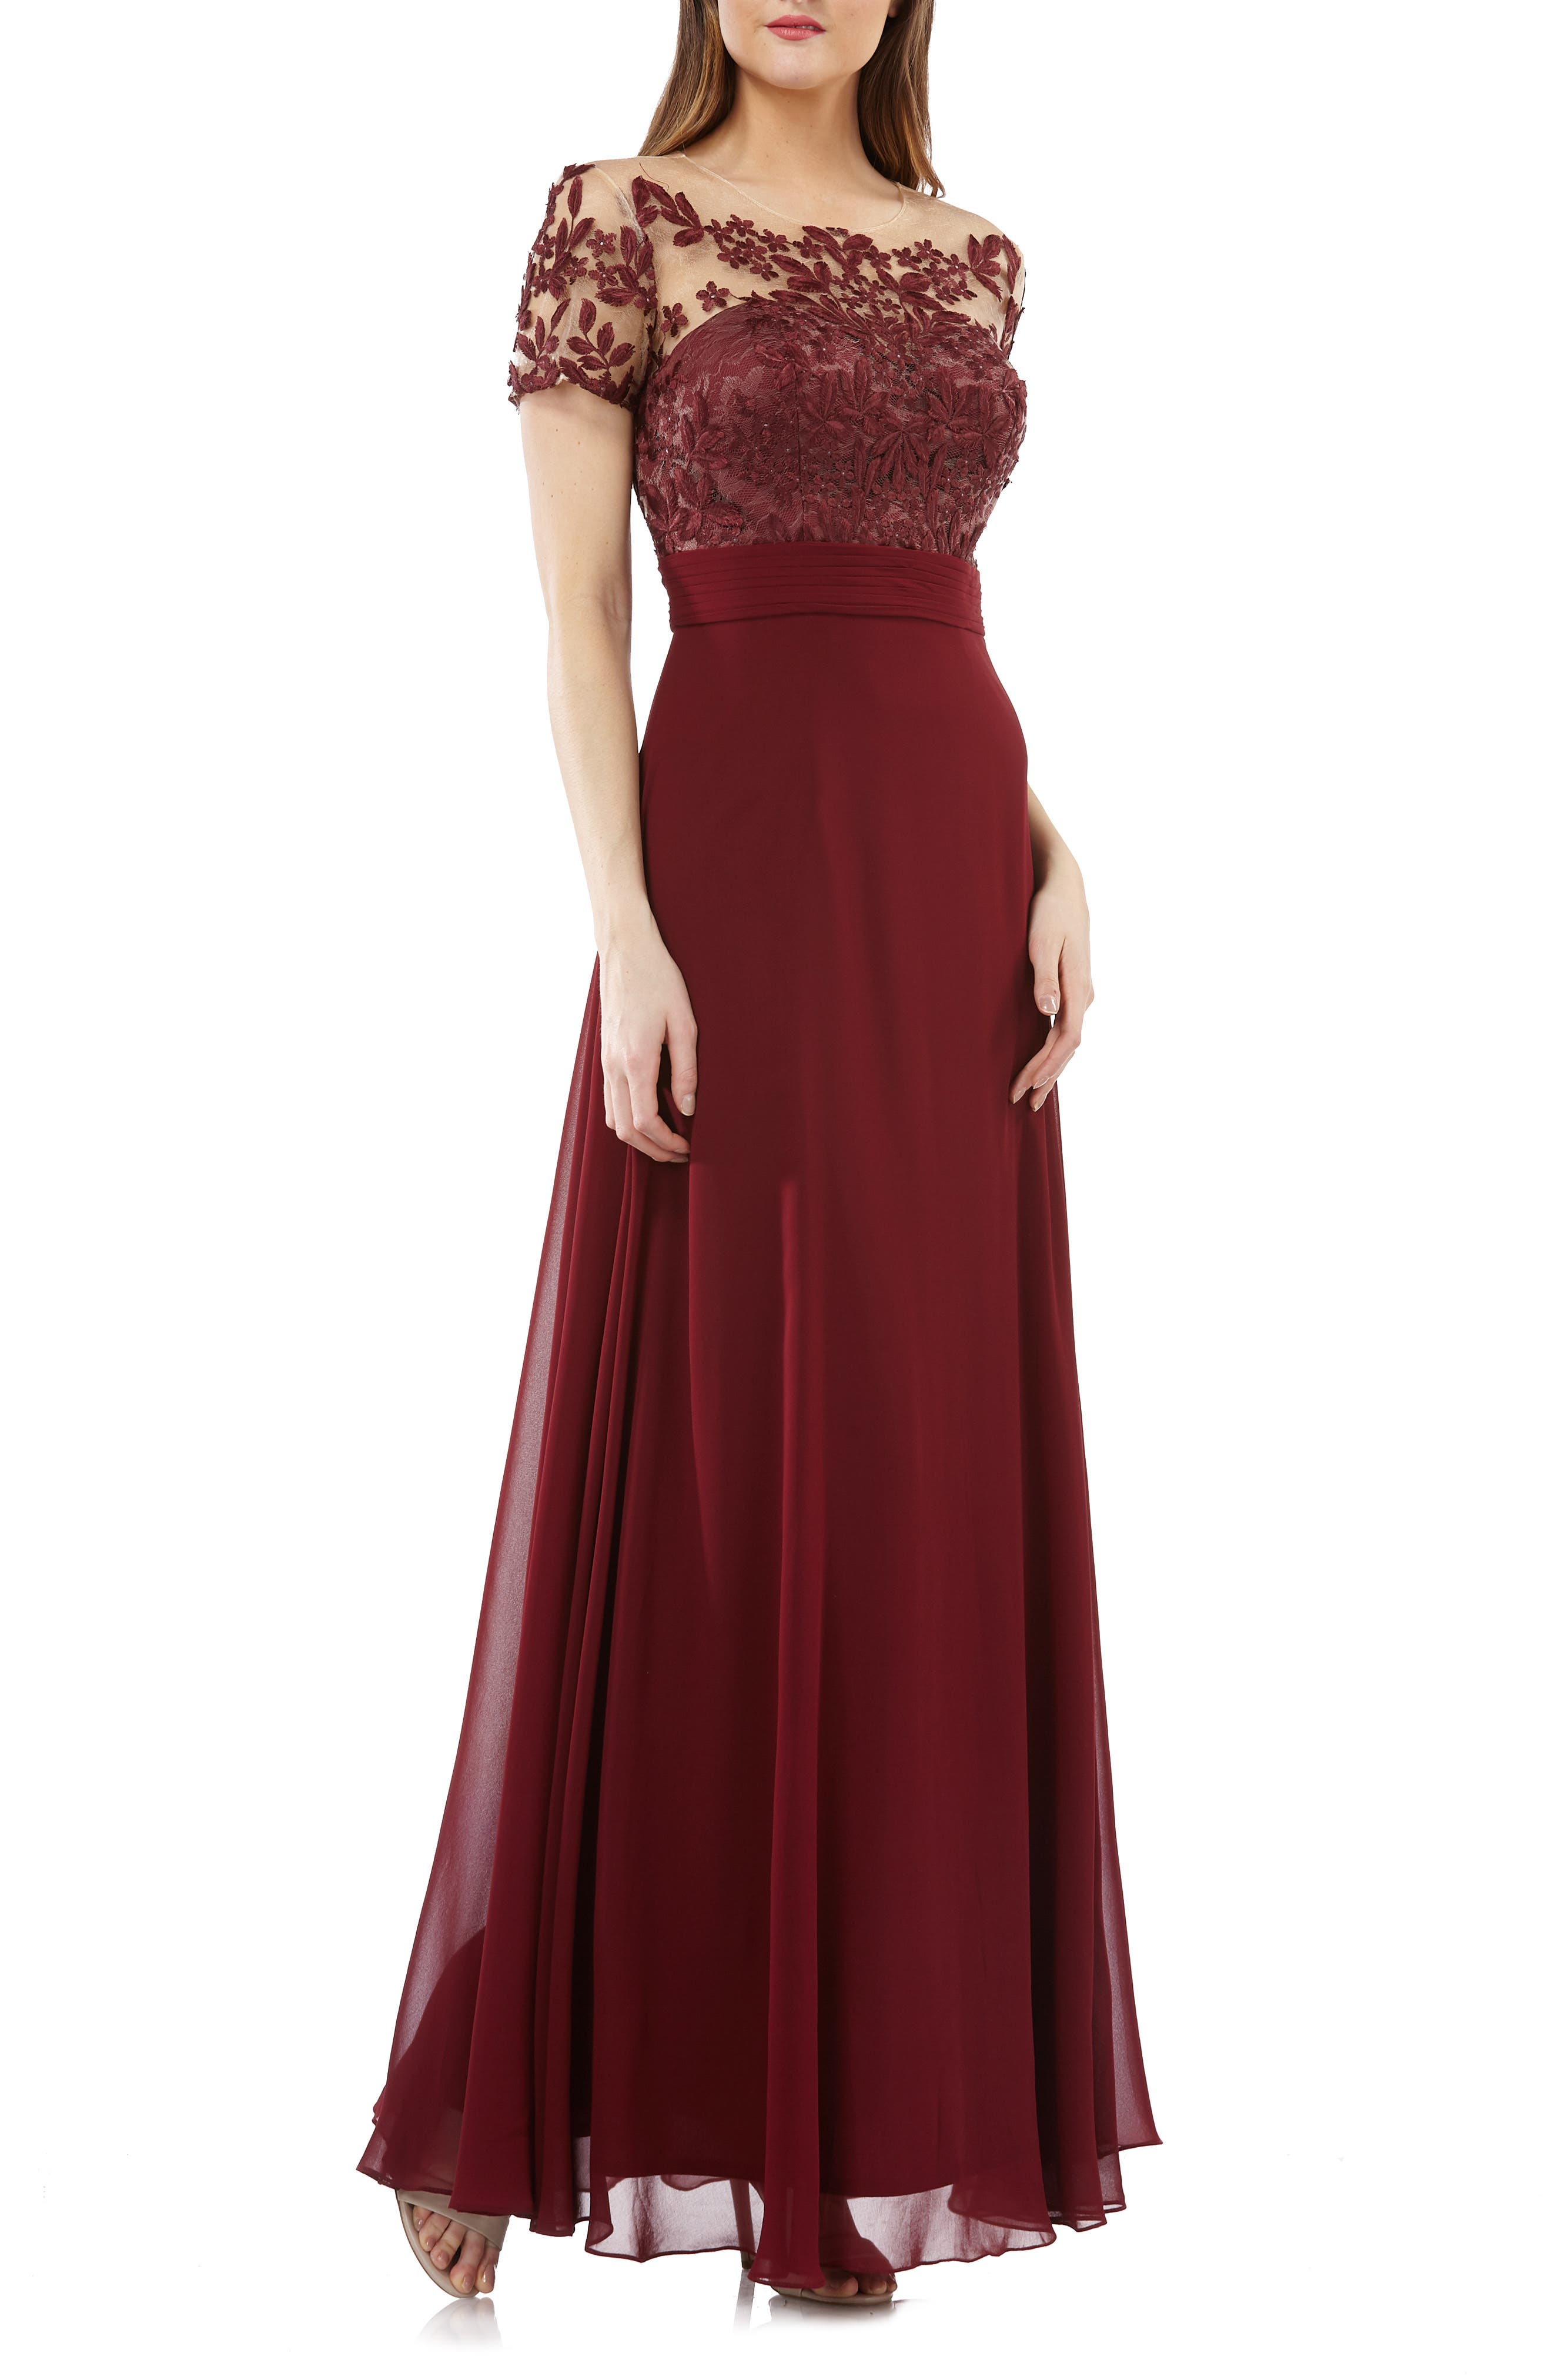 Js Collections Embroidered Illusion Bodice Gown, Burgundy